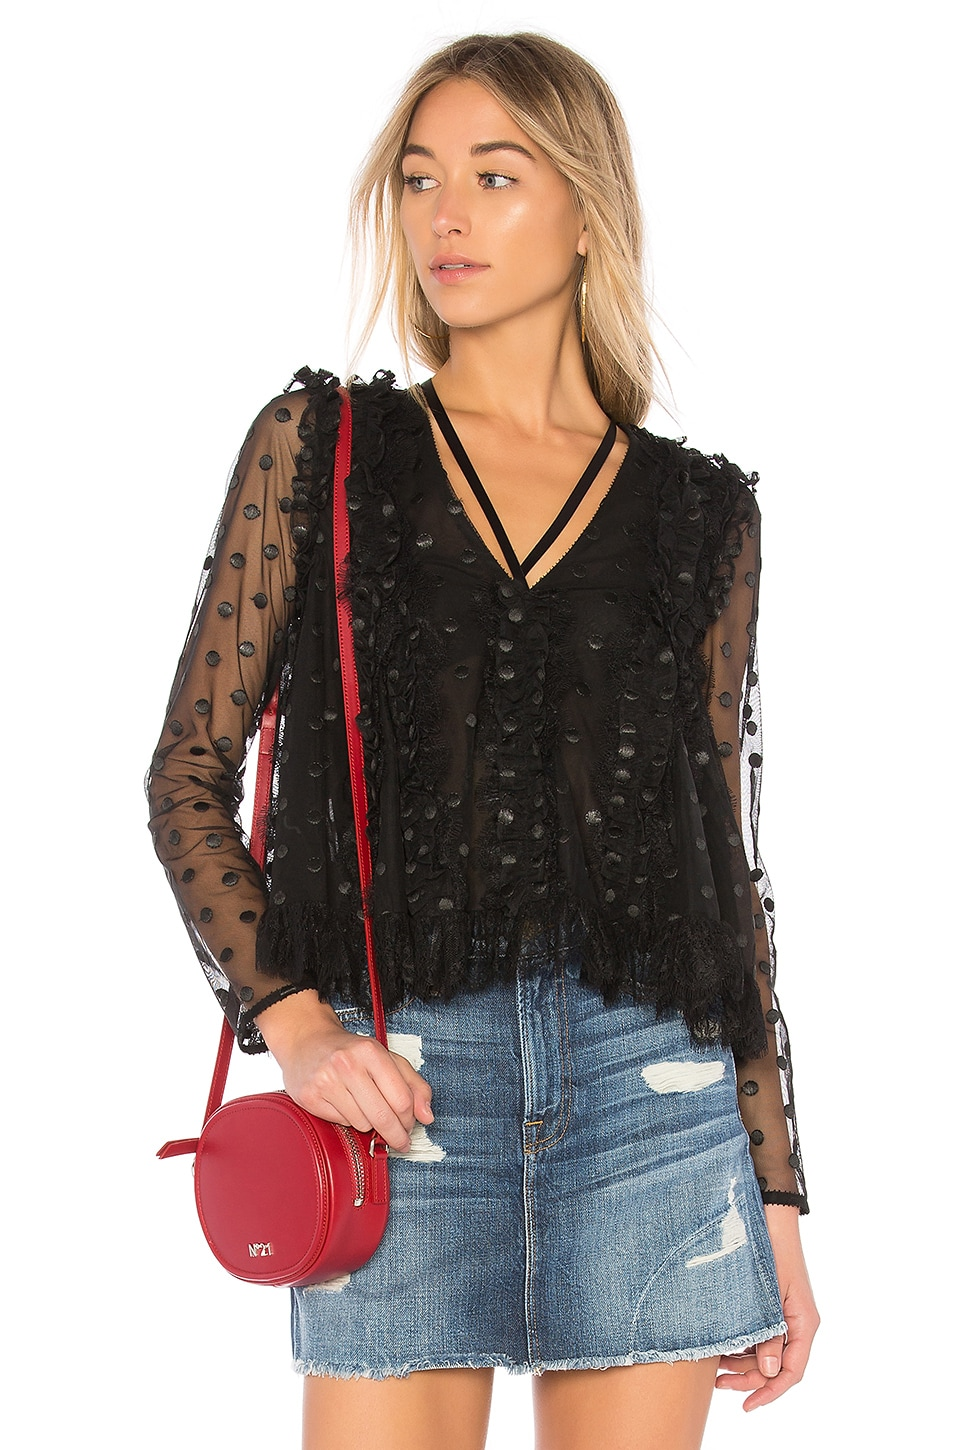 Alexis Clementine Blouse in Sheer Black Dot